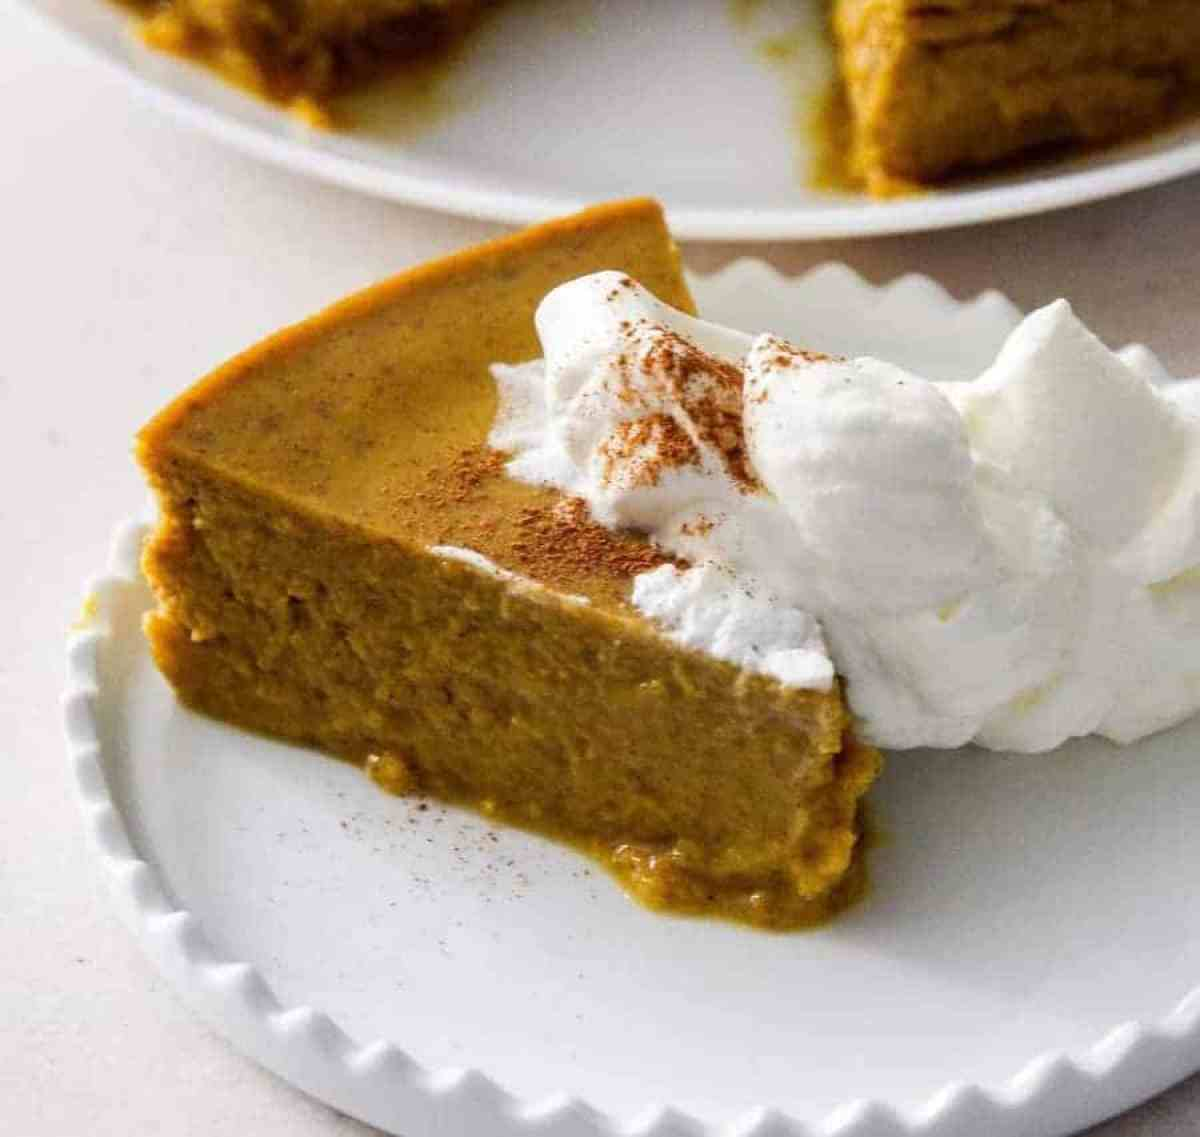 Sideways shot of a slice of crustless pumpkin pie. Perfect, crustless pumpkin pudding pie makes a lovely low carb pumpkin dessert in your Instant Pot or Pressure cooker. This is an easy dump and go dessert.